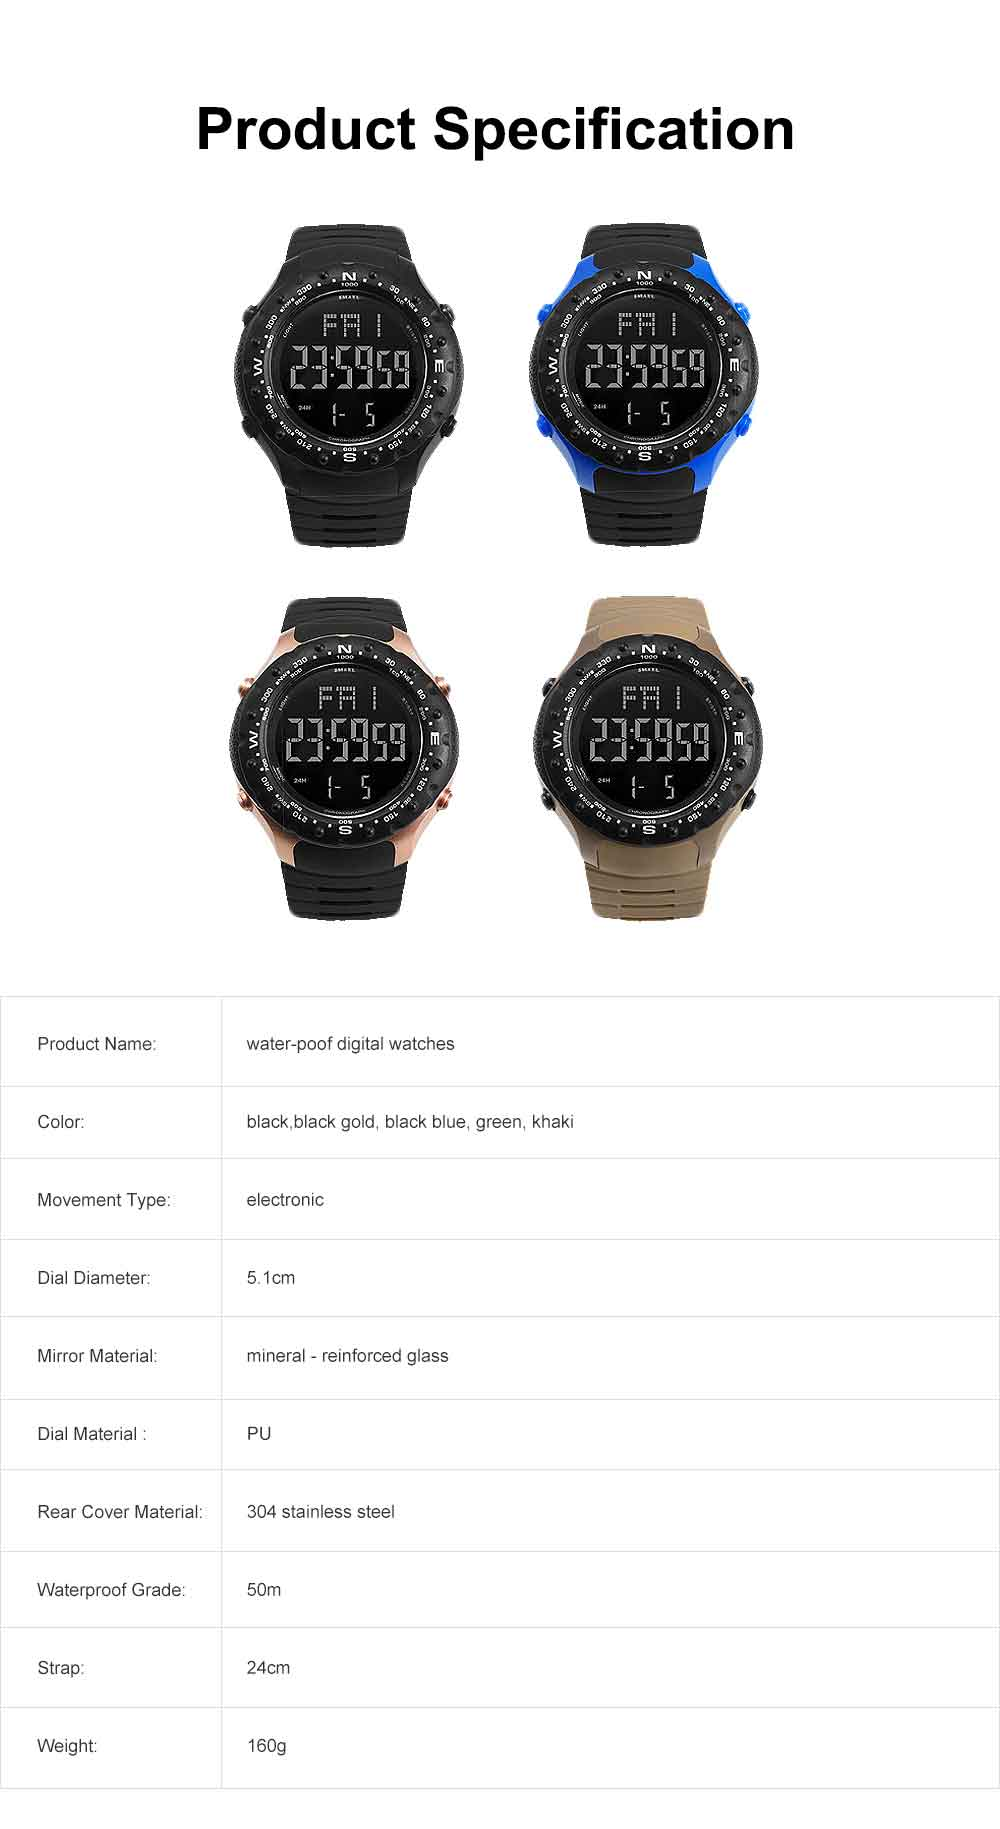 Multifunctional Water-poof Digital Watches, Smart Electronic Watch with TPU Strap 6